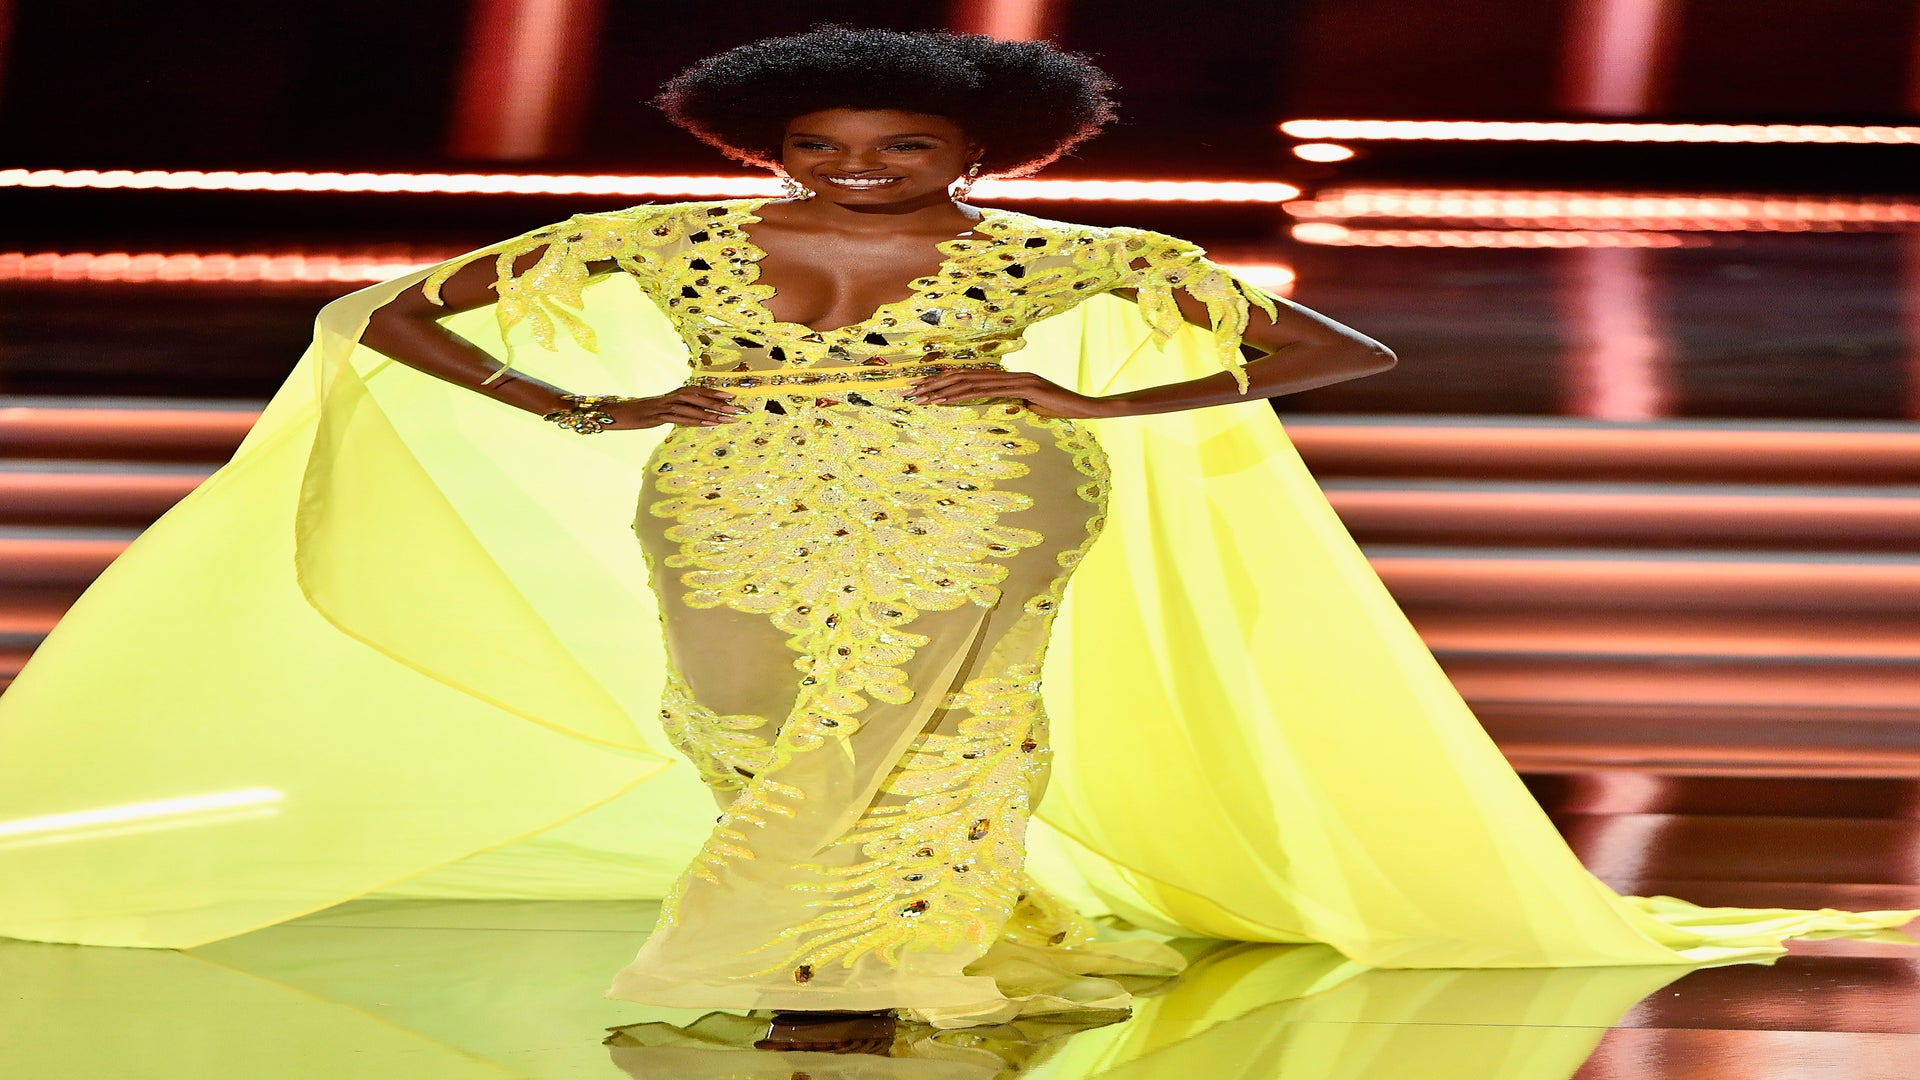 15 Stunning Photos Of Davina Bennett, The Miss Universe Contestant With The Glorious Afro Who's Breaking The Internet